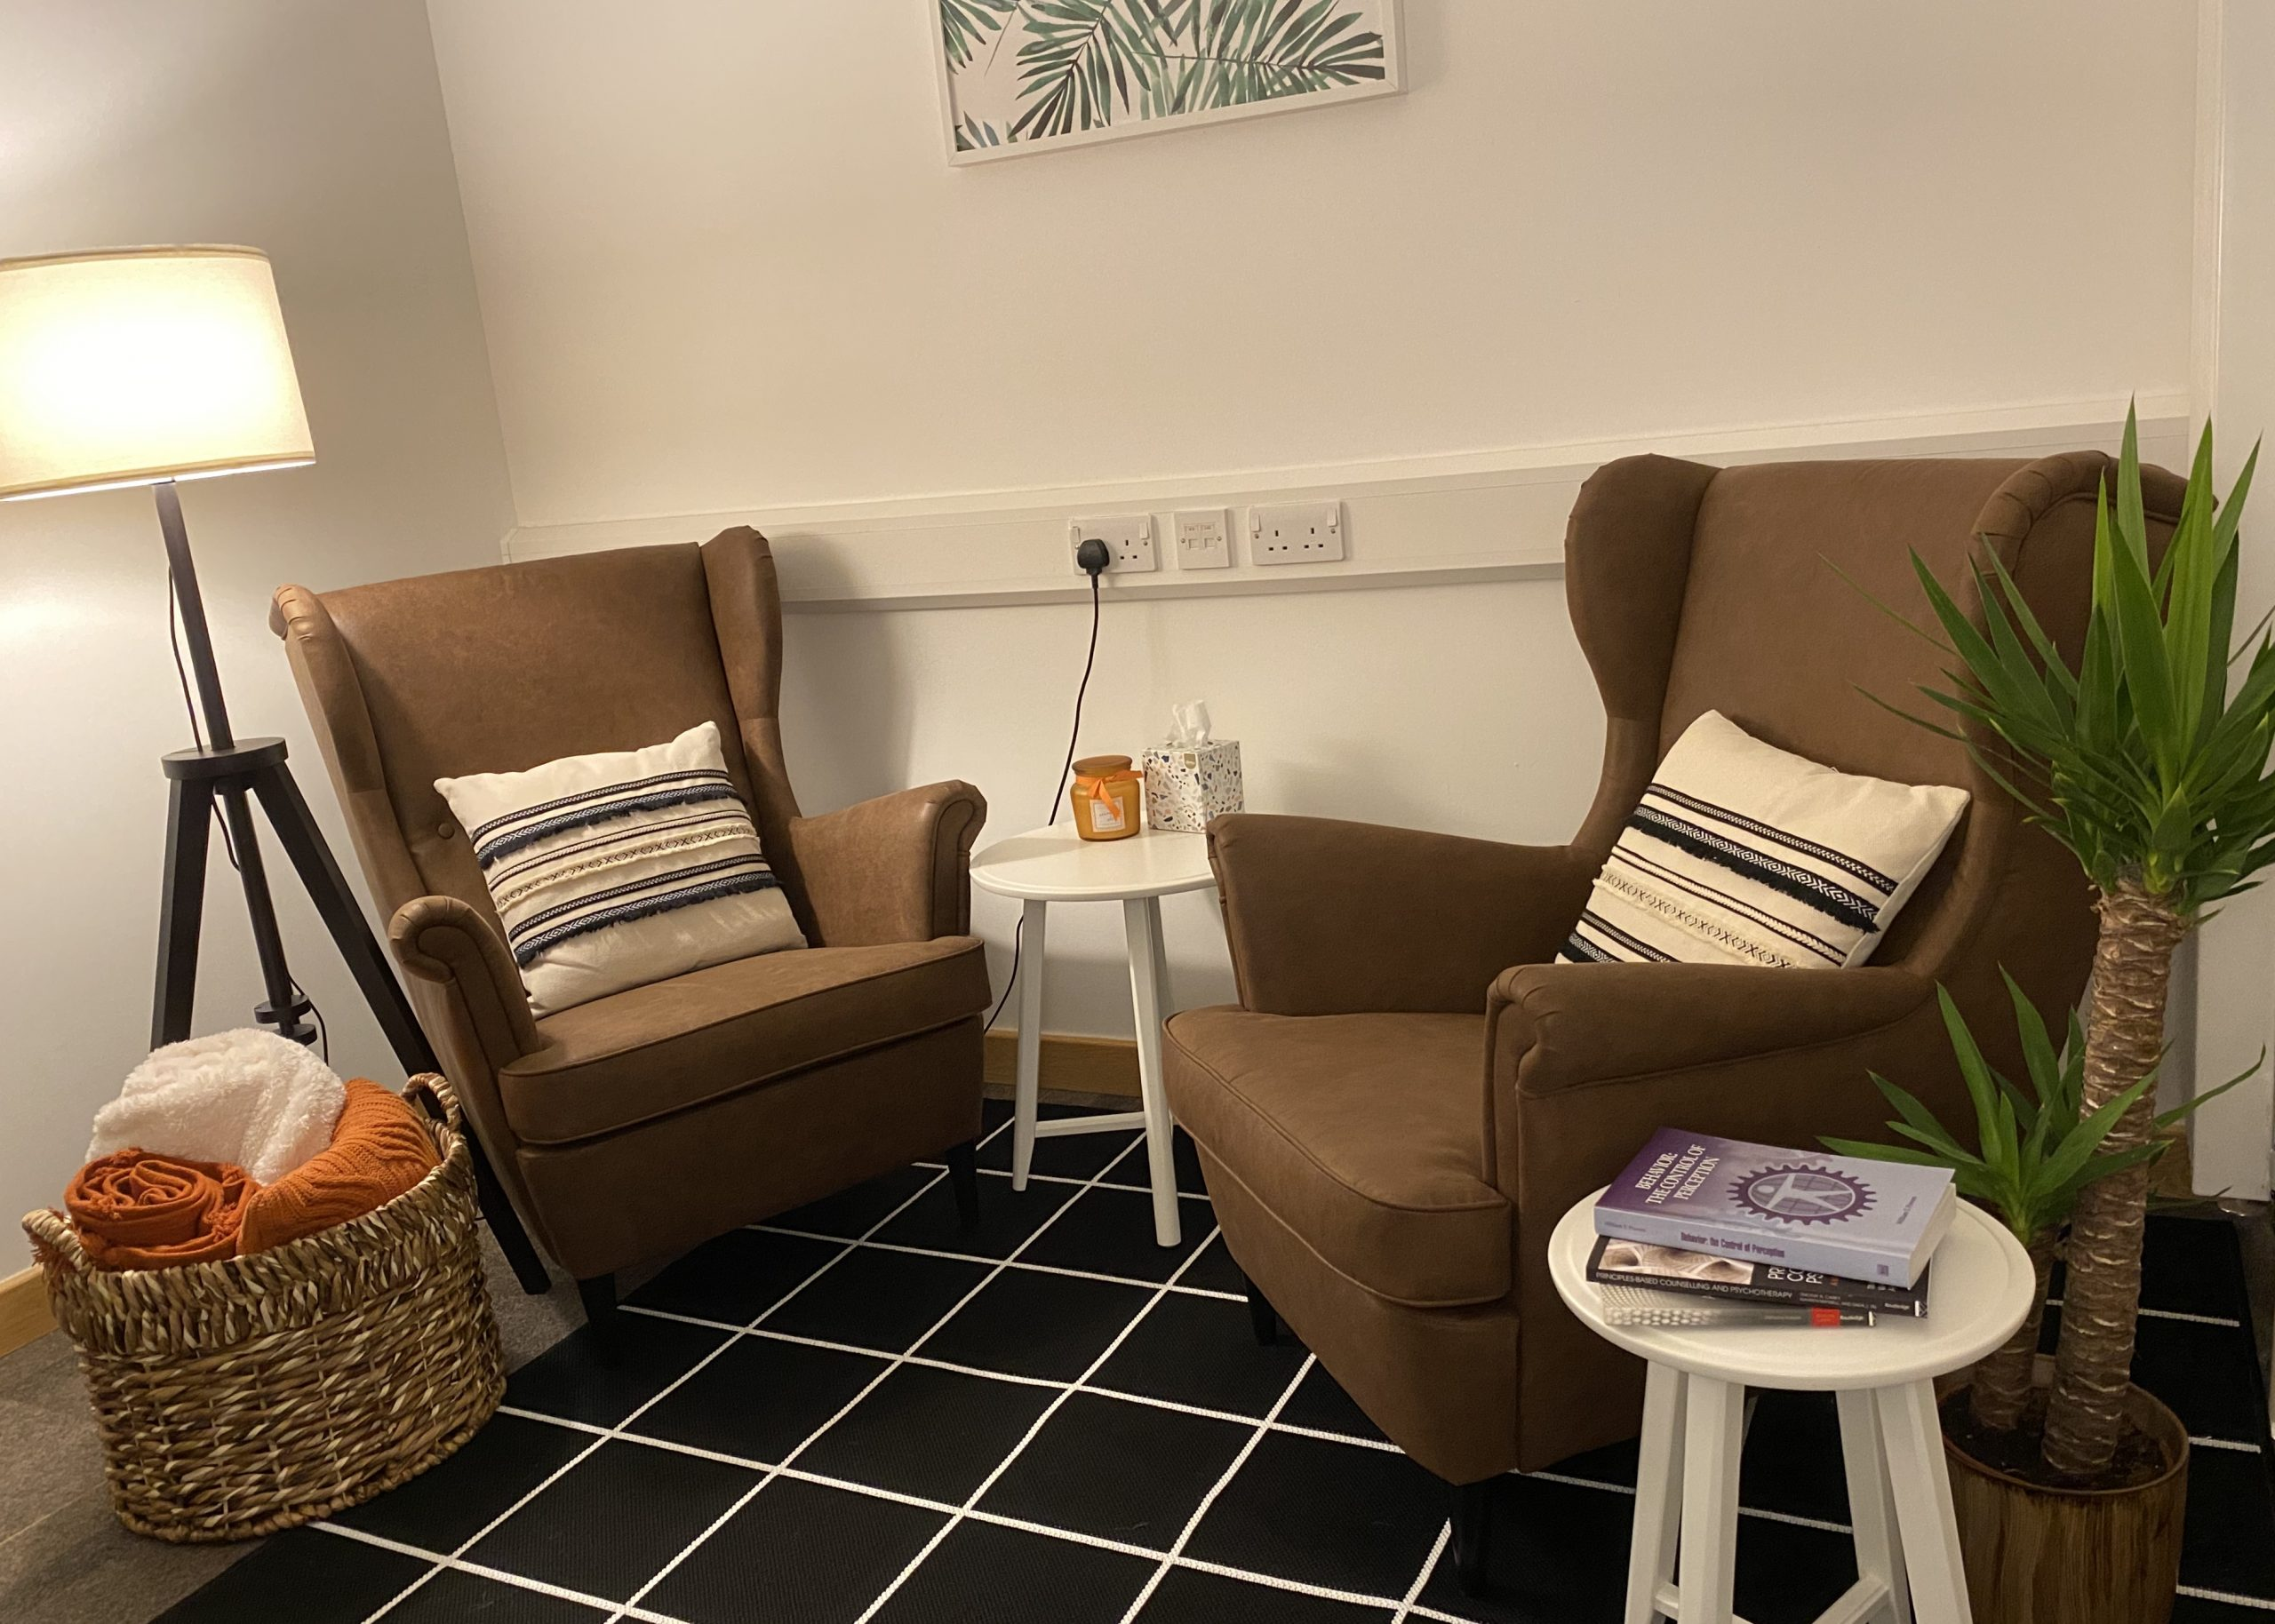 The therapy room with leather armchairs and soft cushions